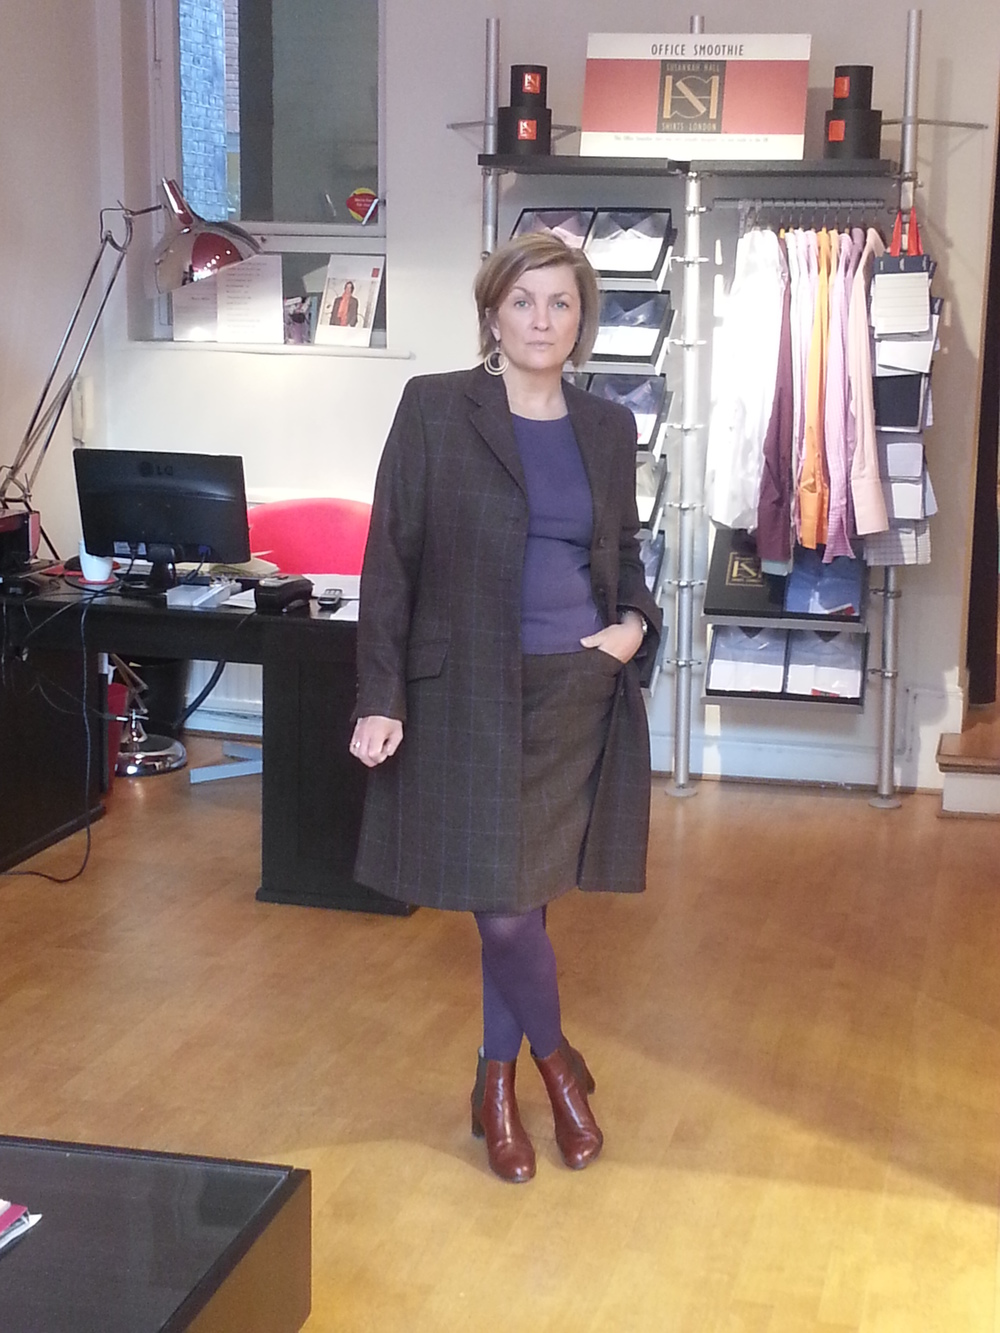 susannah-hall-tweed-ladies-skirt-suit-brown-purple-bespoke-check-wool-all-uk-made.jpg